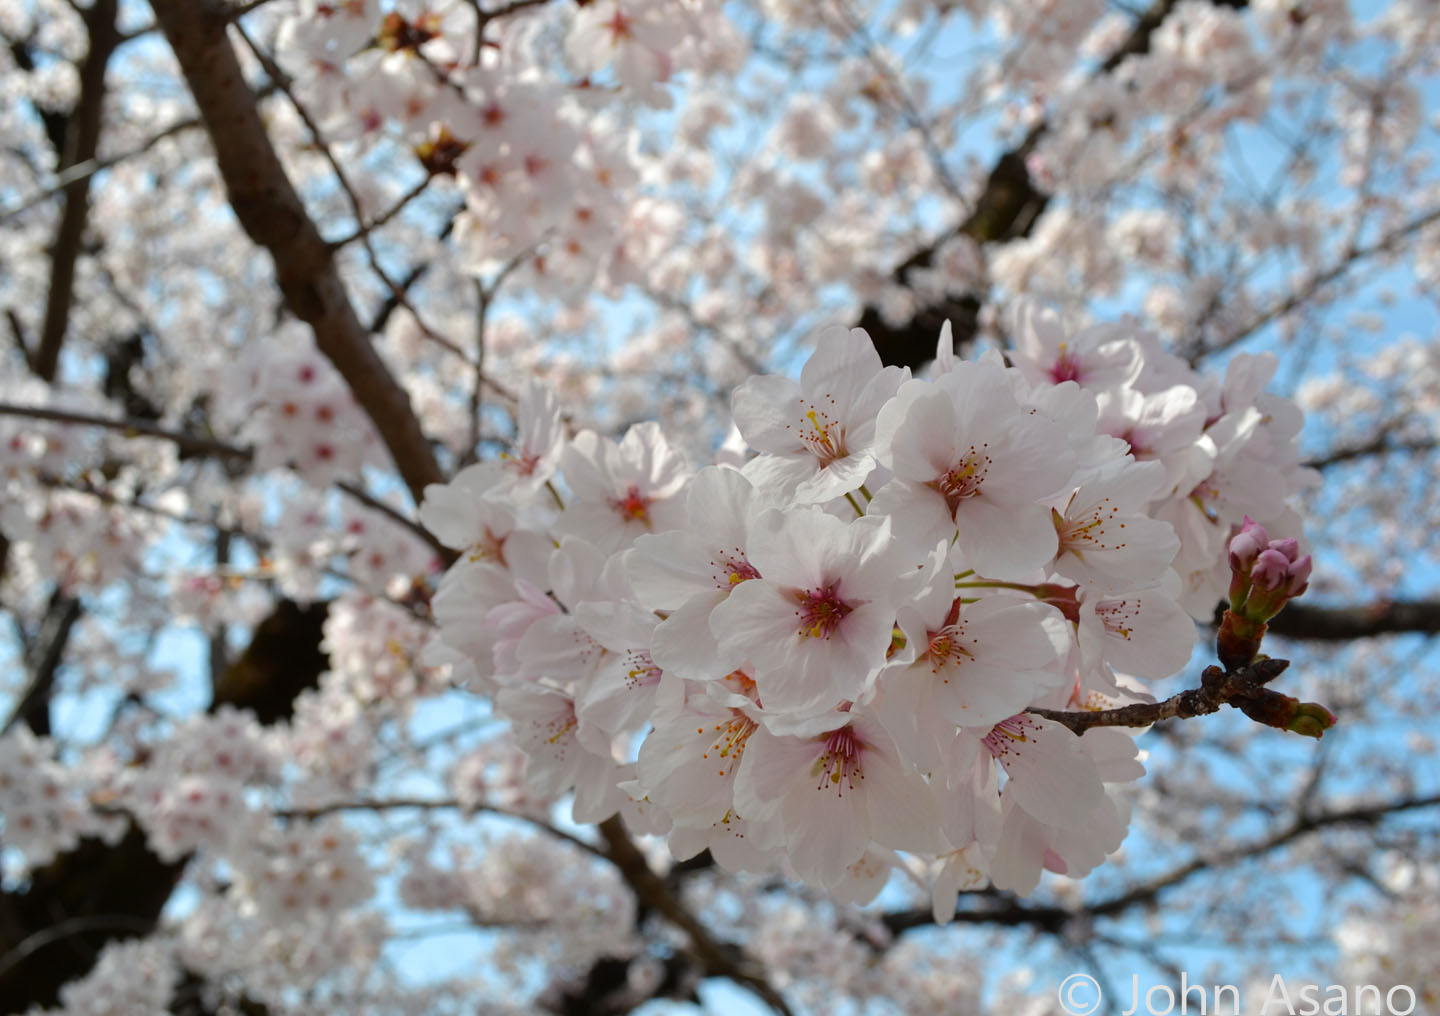 Japan cherry blossom forecast 2016 japan travel advice Cherry blossom pictures